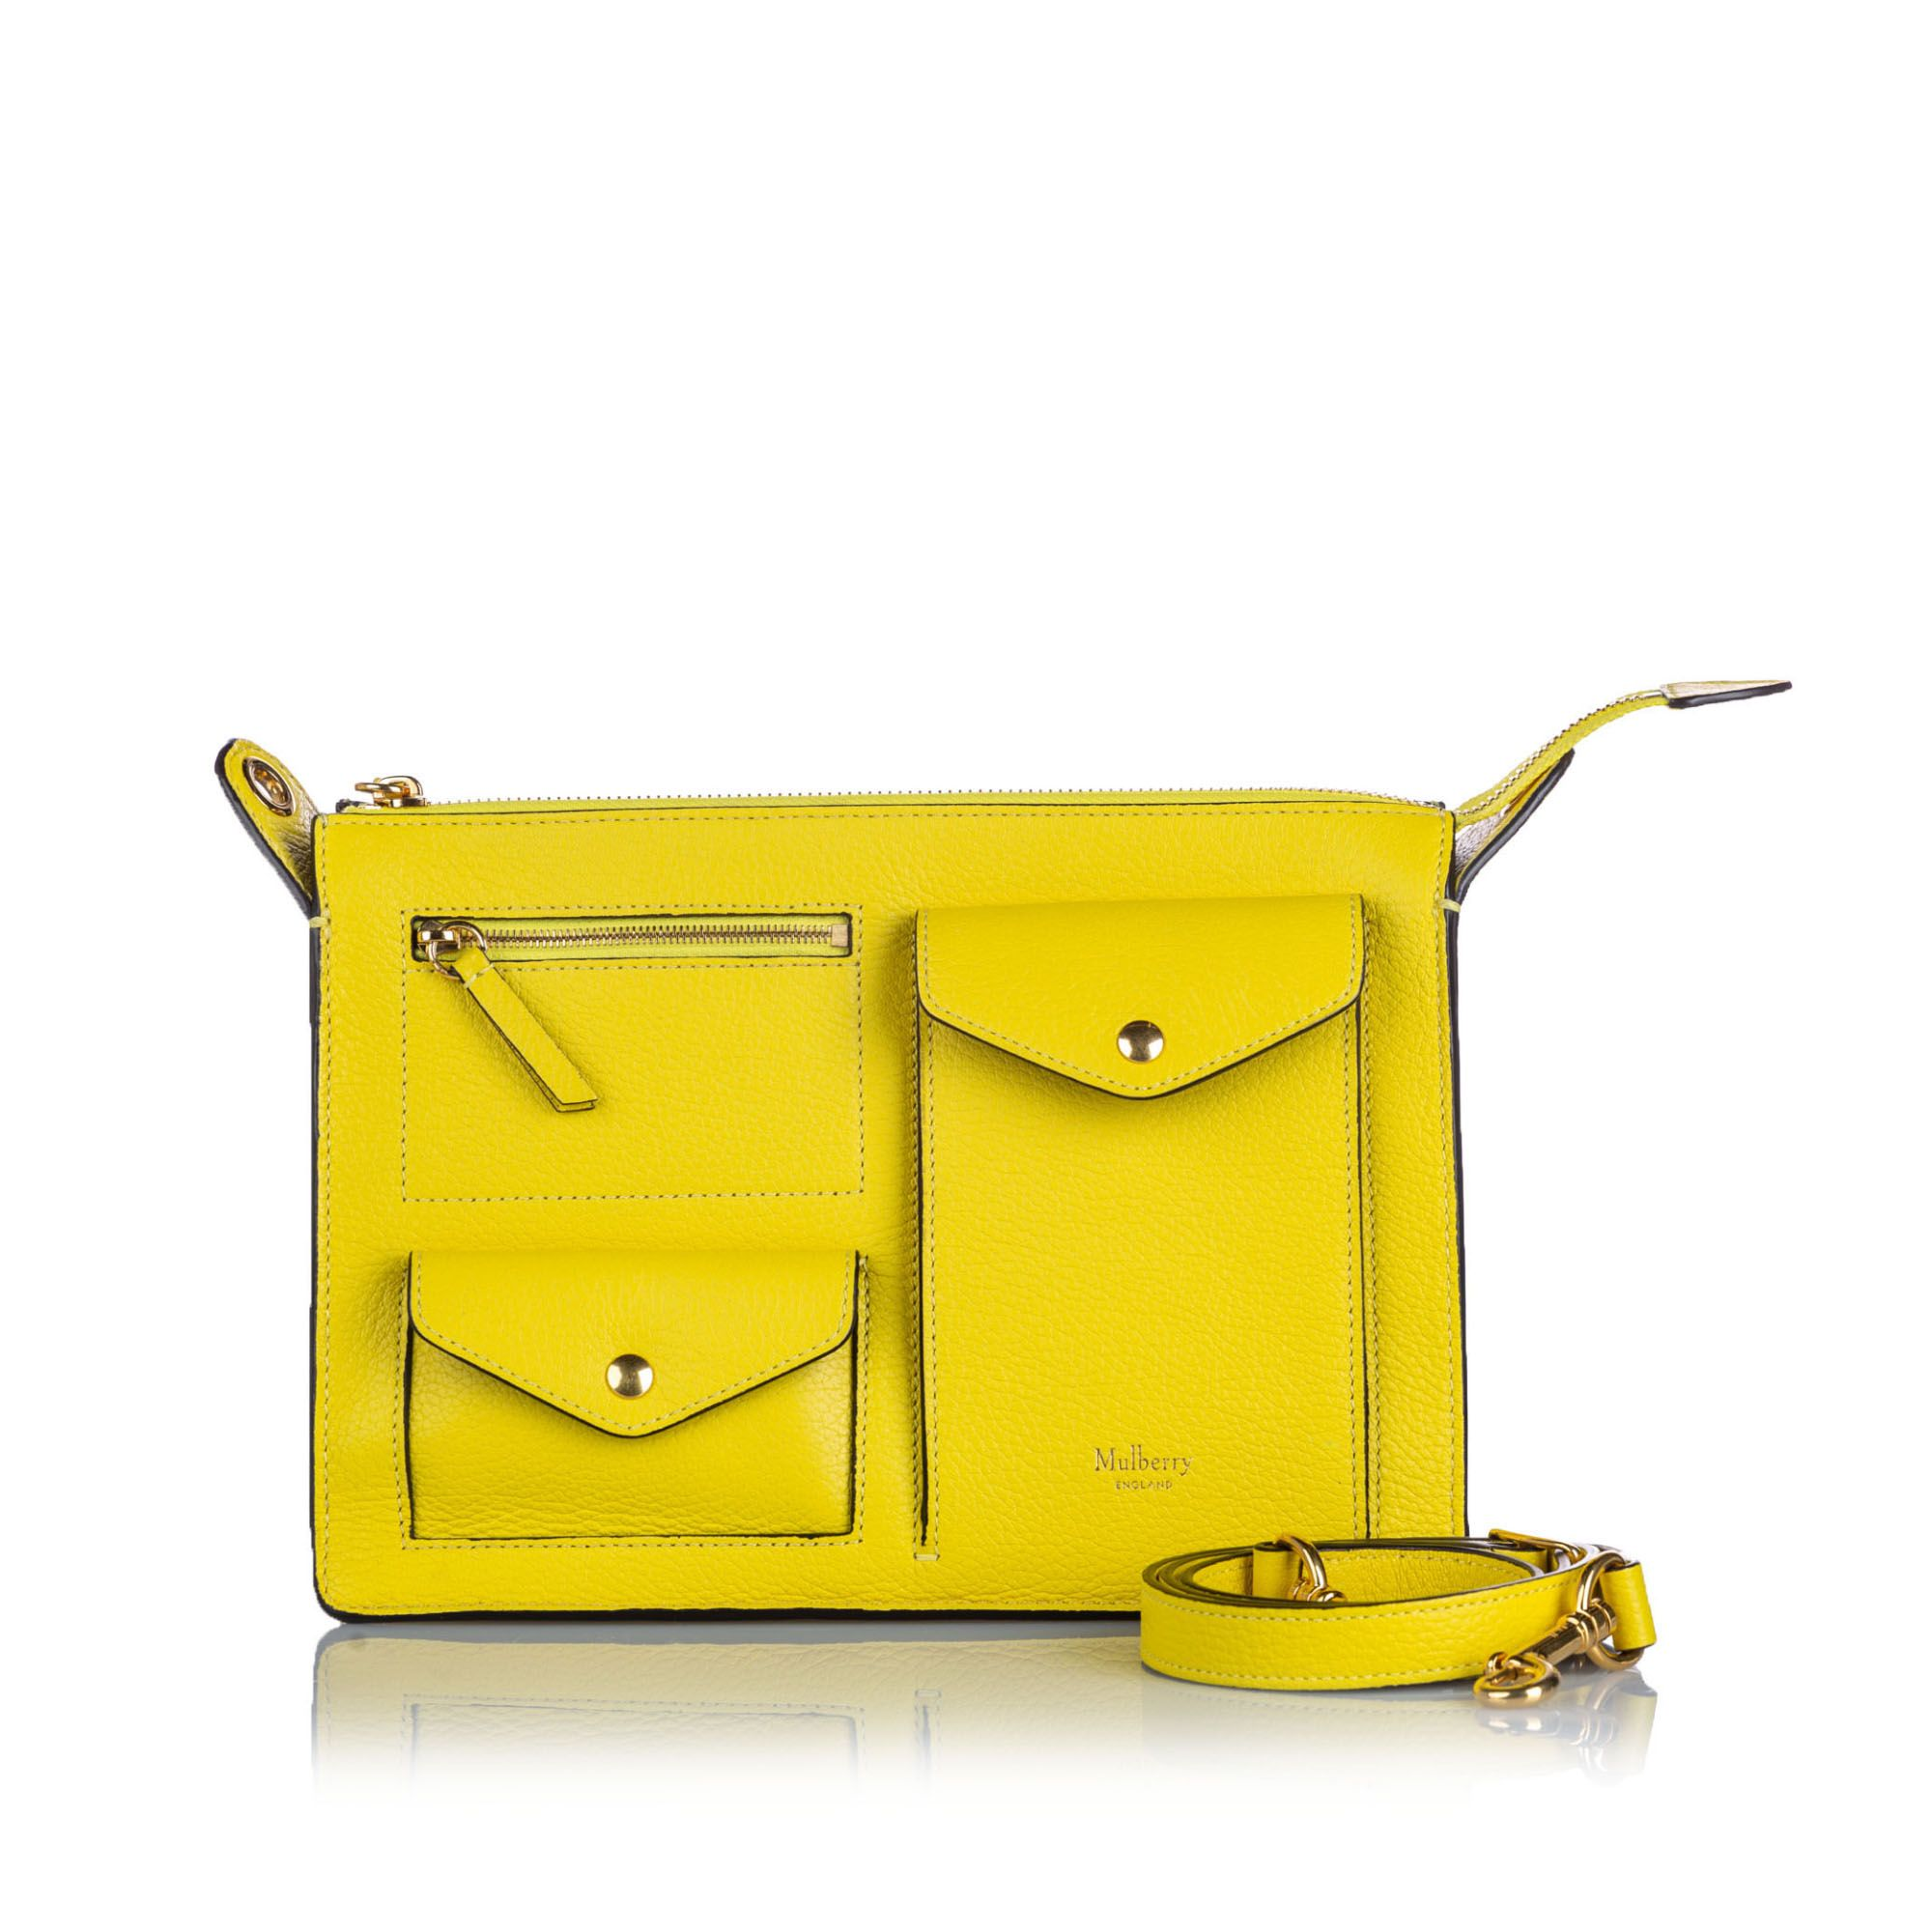 Vintage Mulberry Leather Cherwell Satchel Yellow